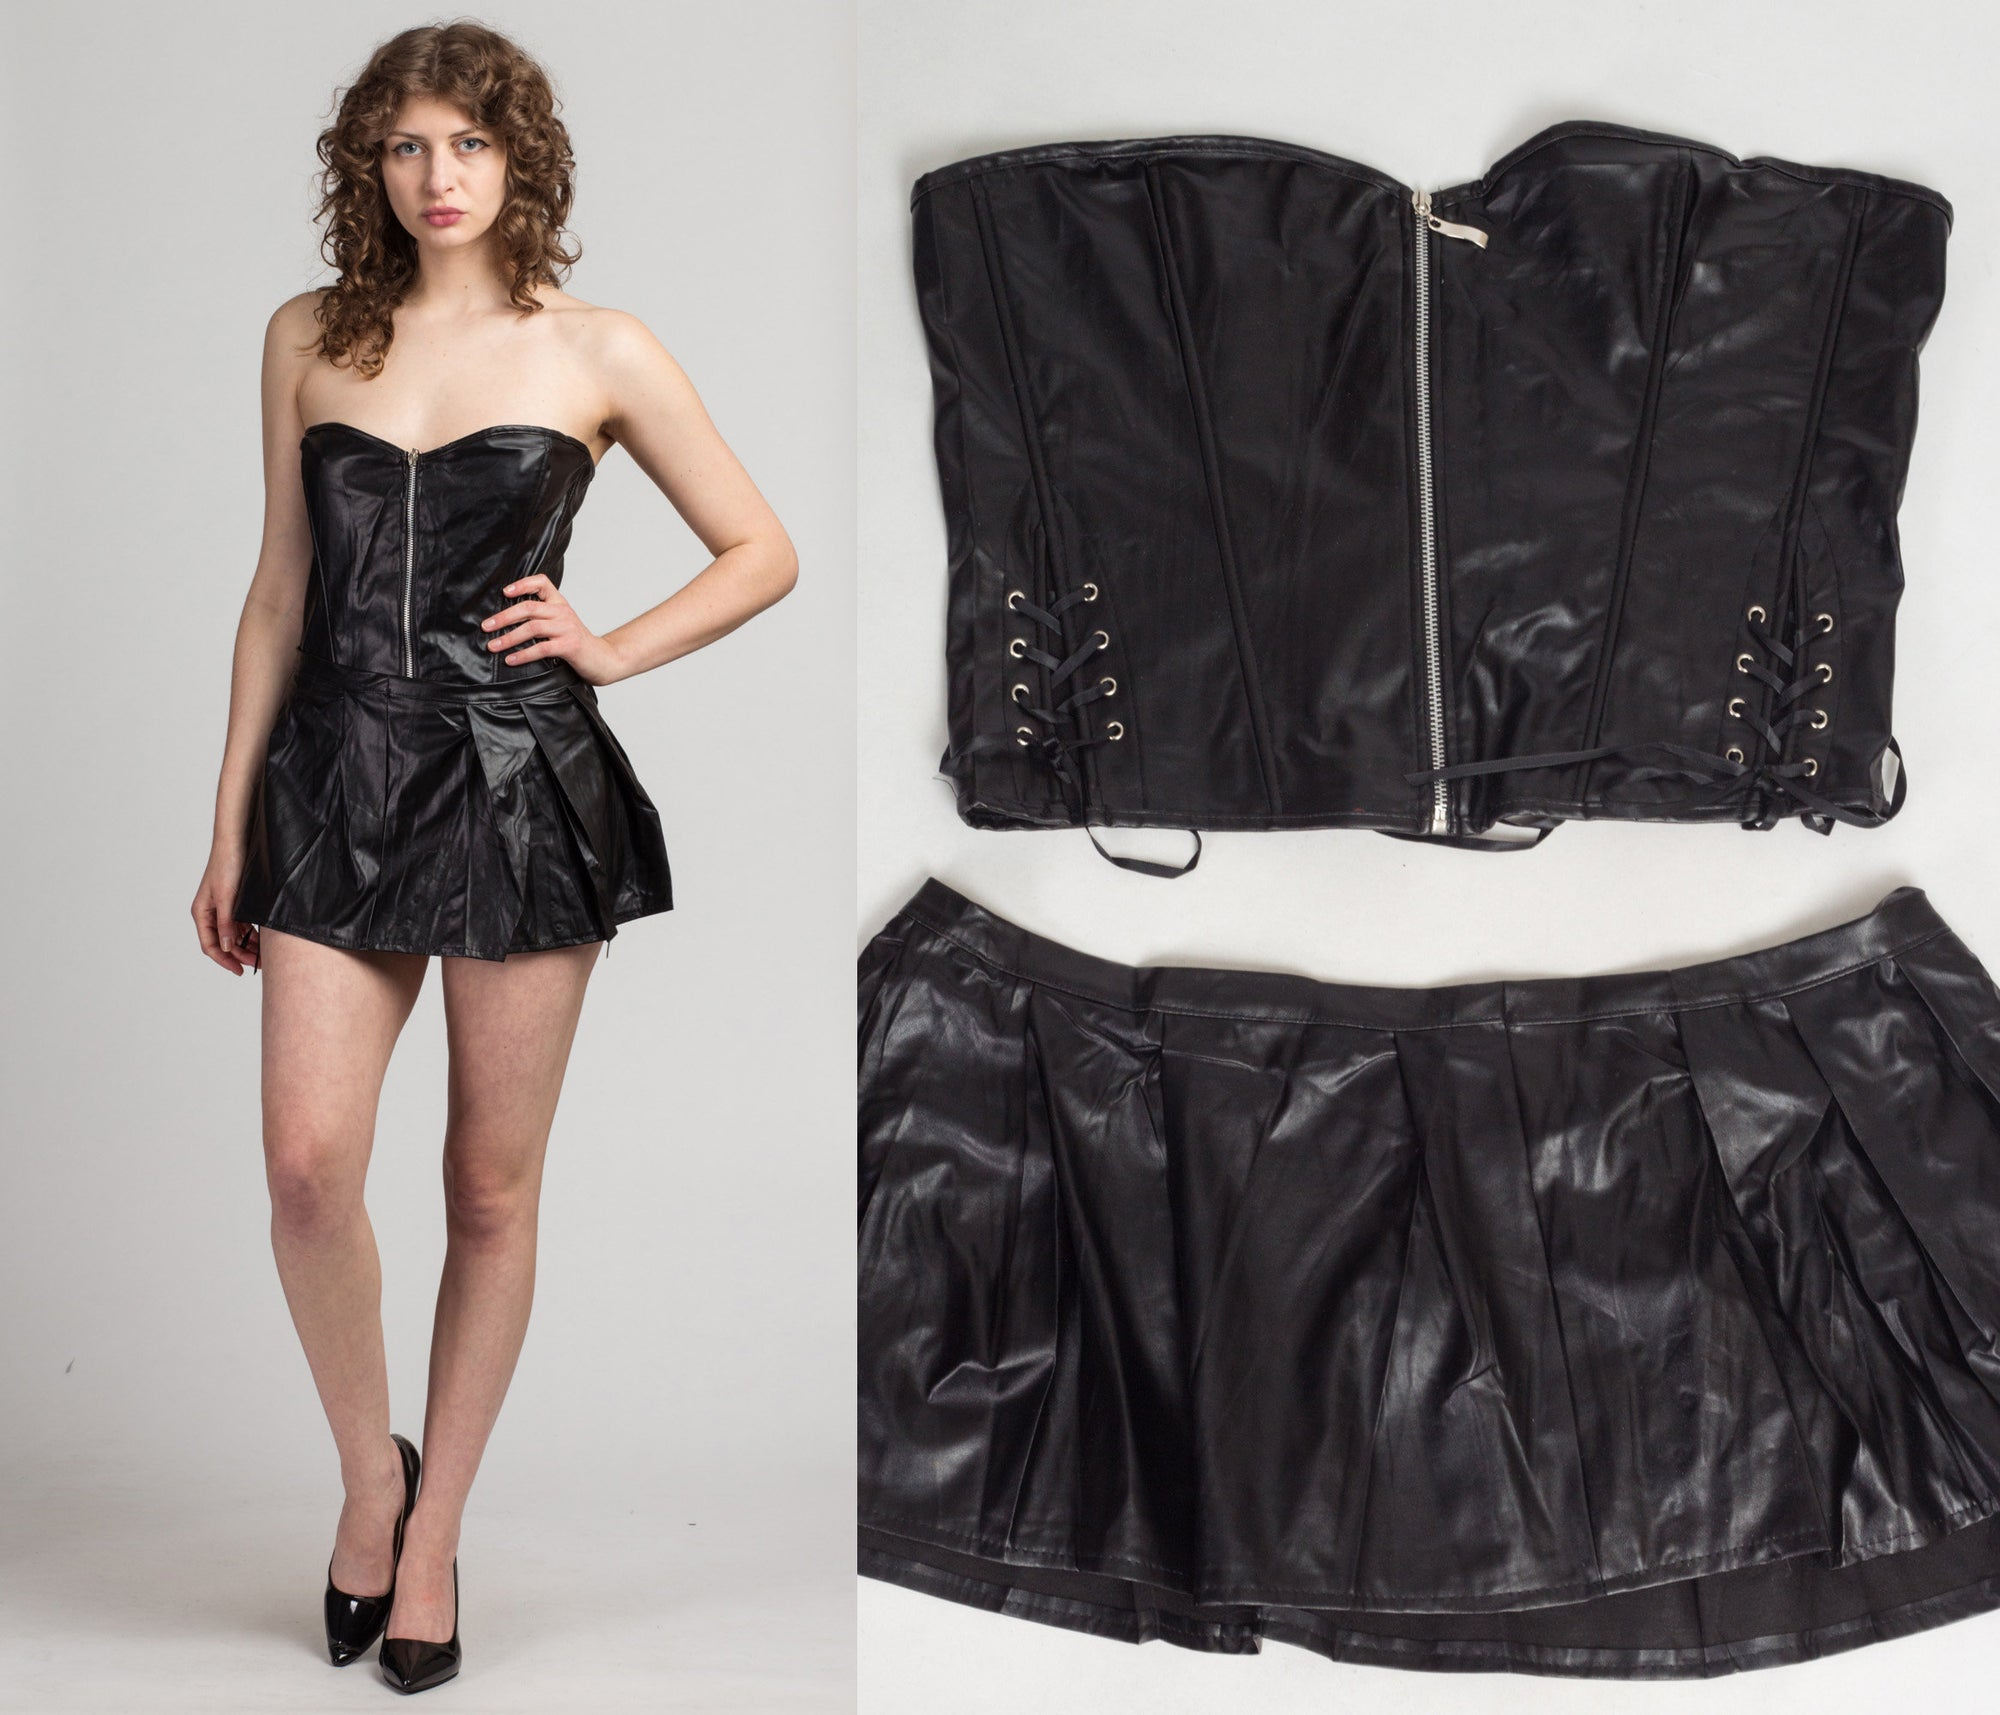 Black Faux Leather Bustier & Skirt Set - 2X to 3X | Y2k Black Pin Up Costume Corset Outfit